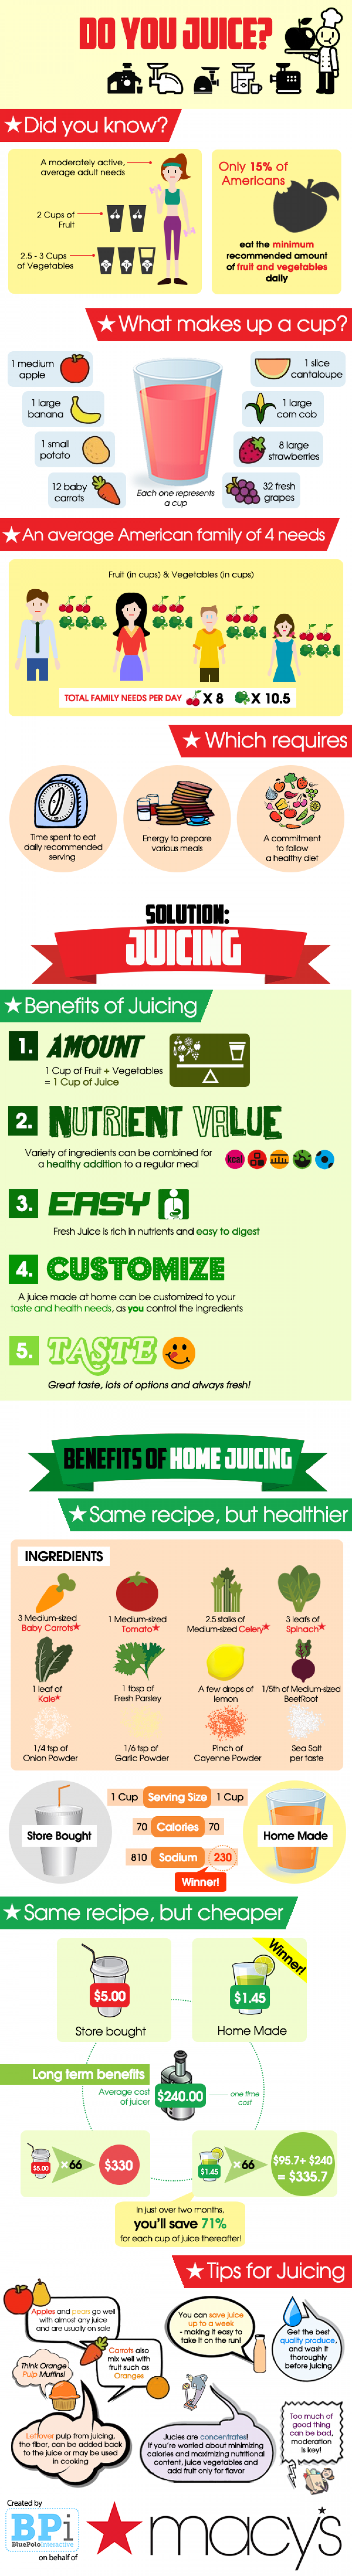 The Benefits of Home Juicing Infographic